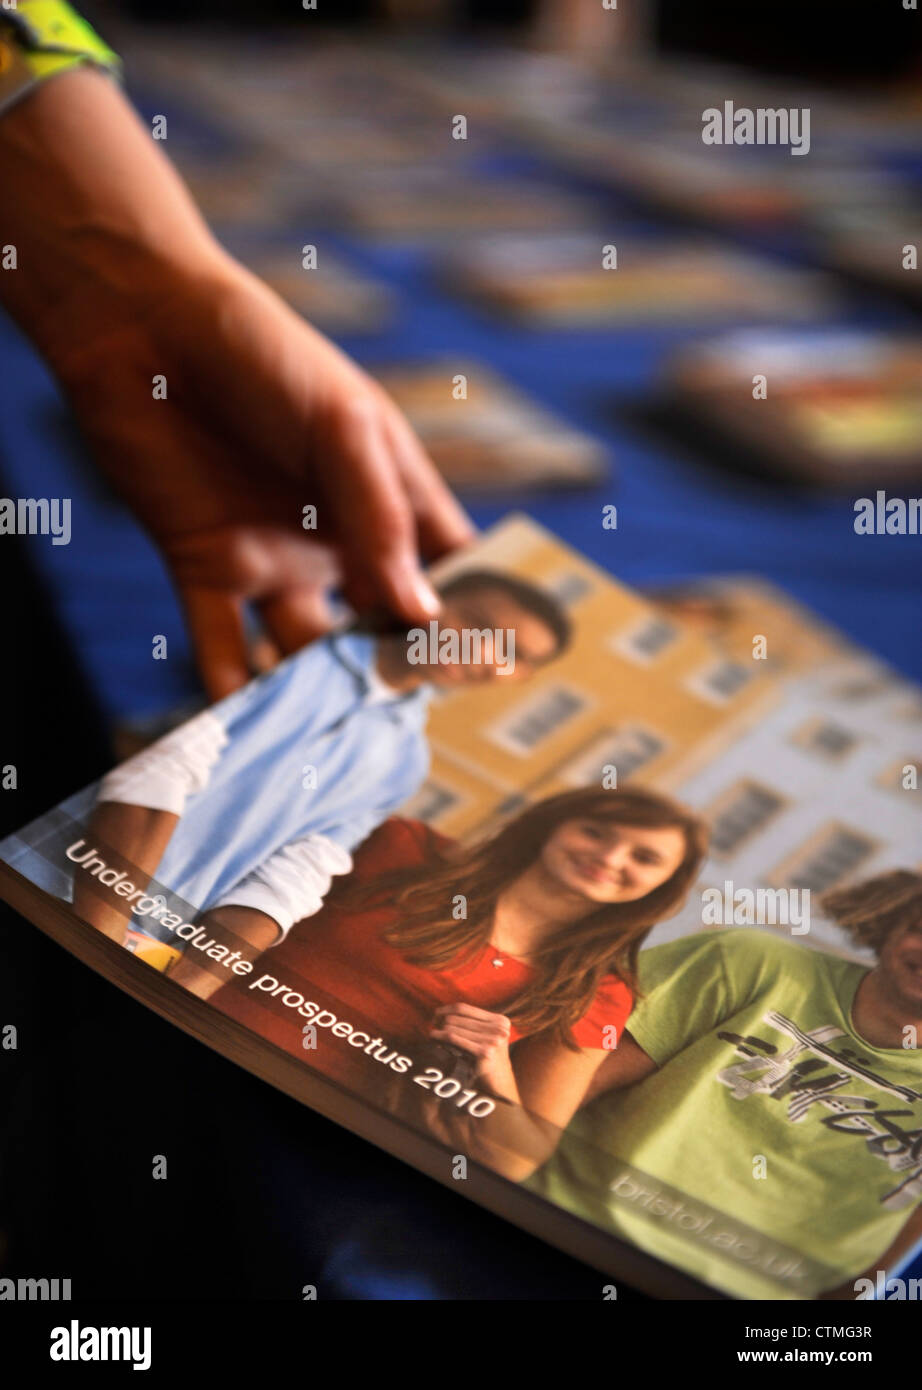 A student picks up a prospectus at an open day at Bristol University UK - Stock Image